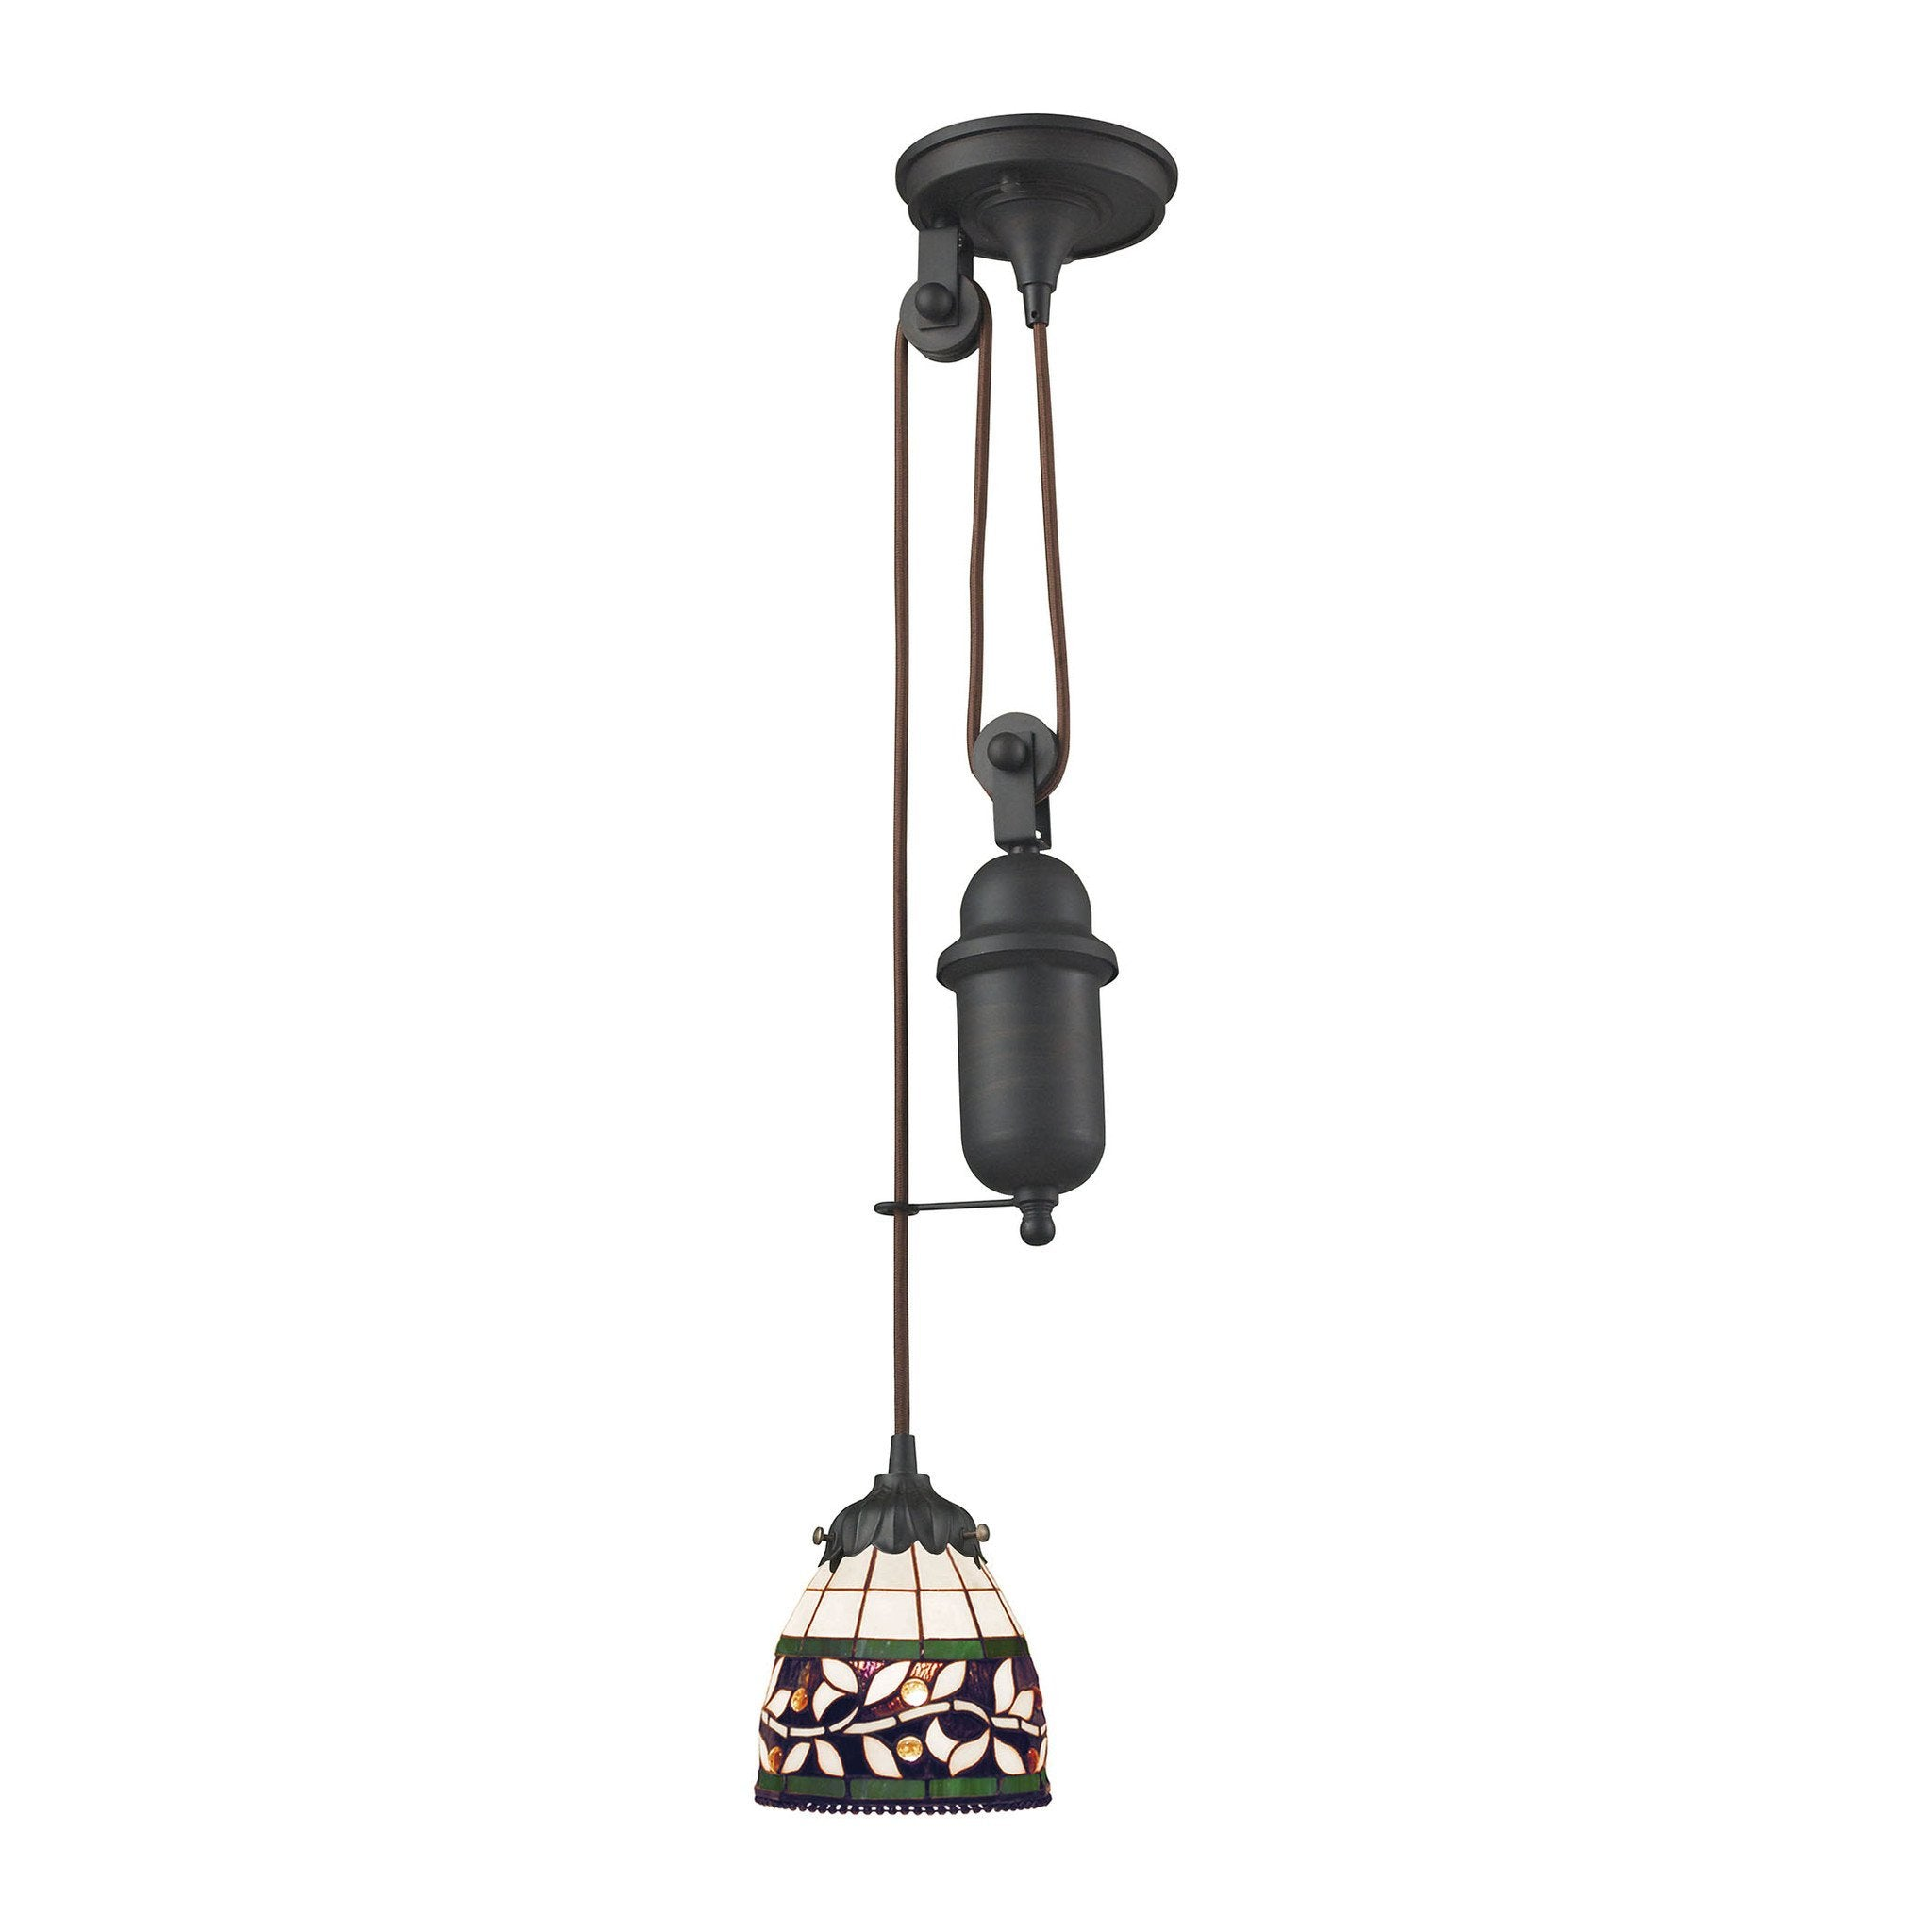 ELK Lighting 081-TB-13 Mix-N-Match Collection Tiffany Bronze Finish